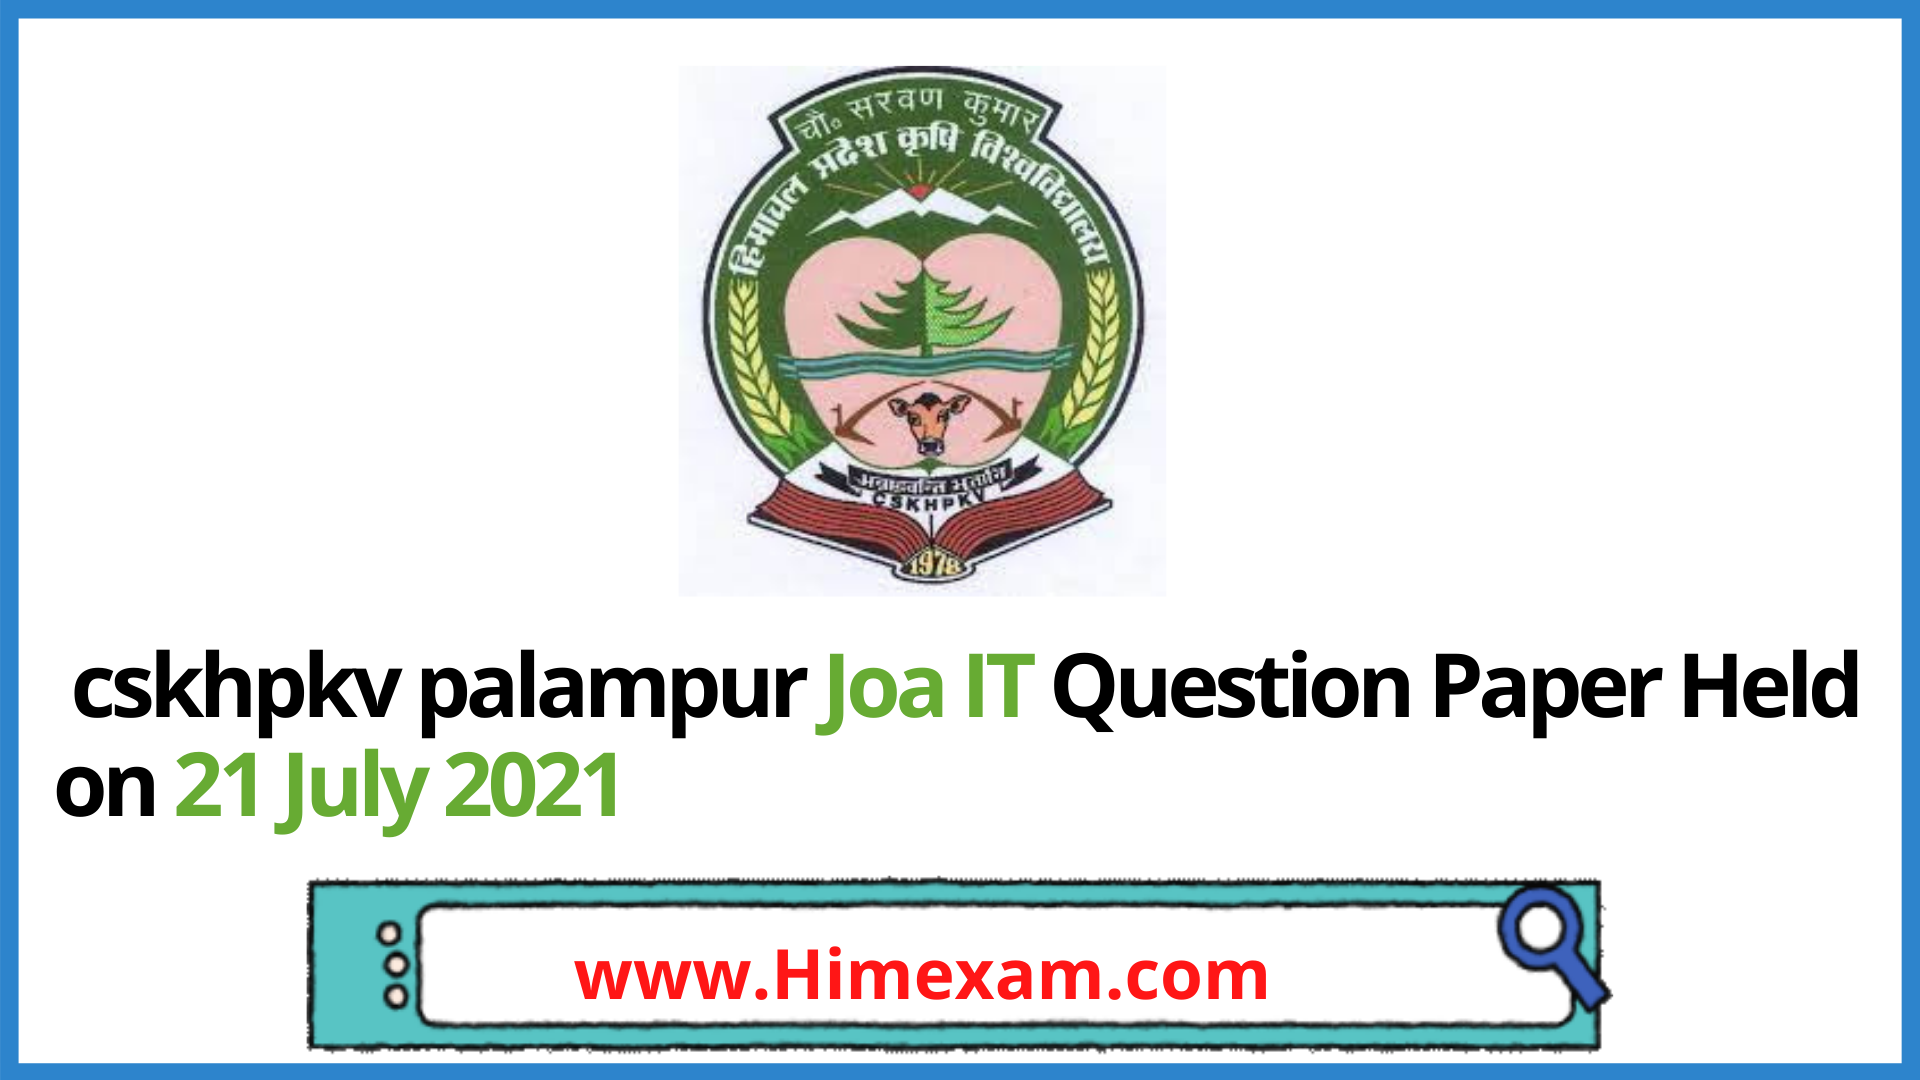 cskhpkv palampur Joa IT Question Paper Held on 21 July 2021